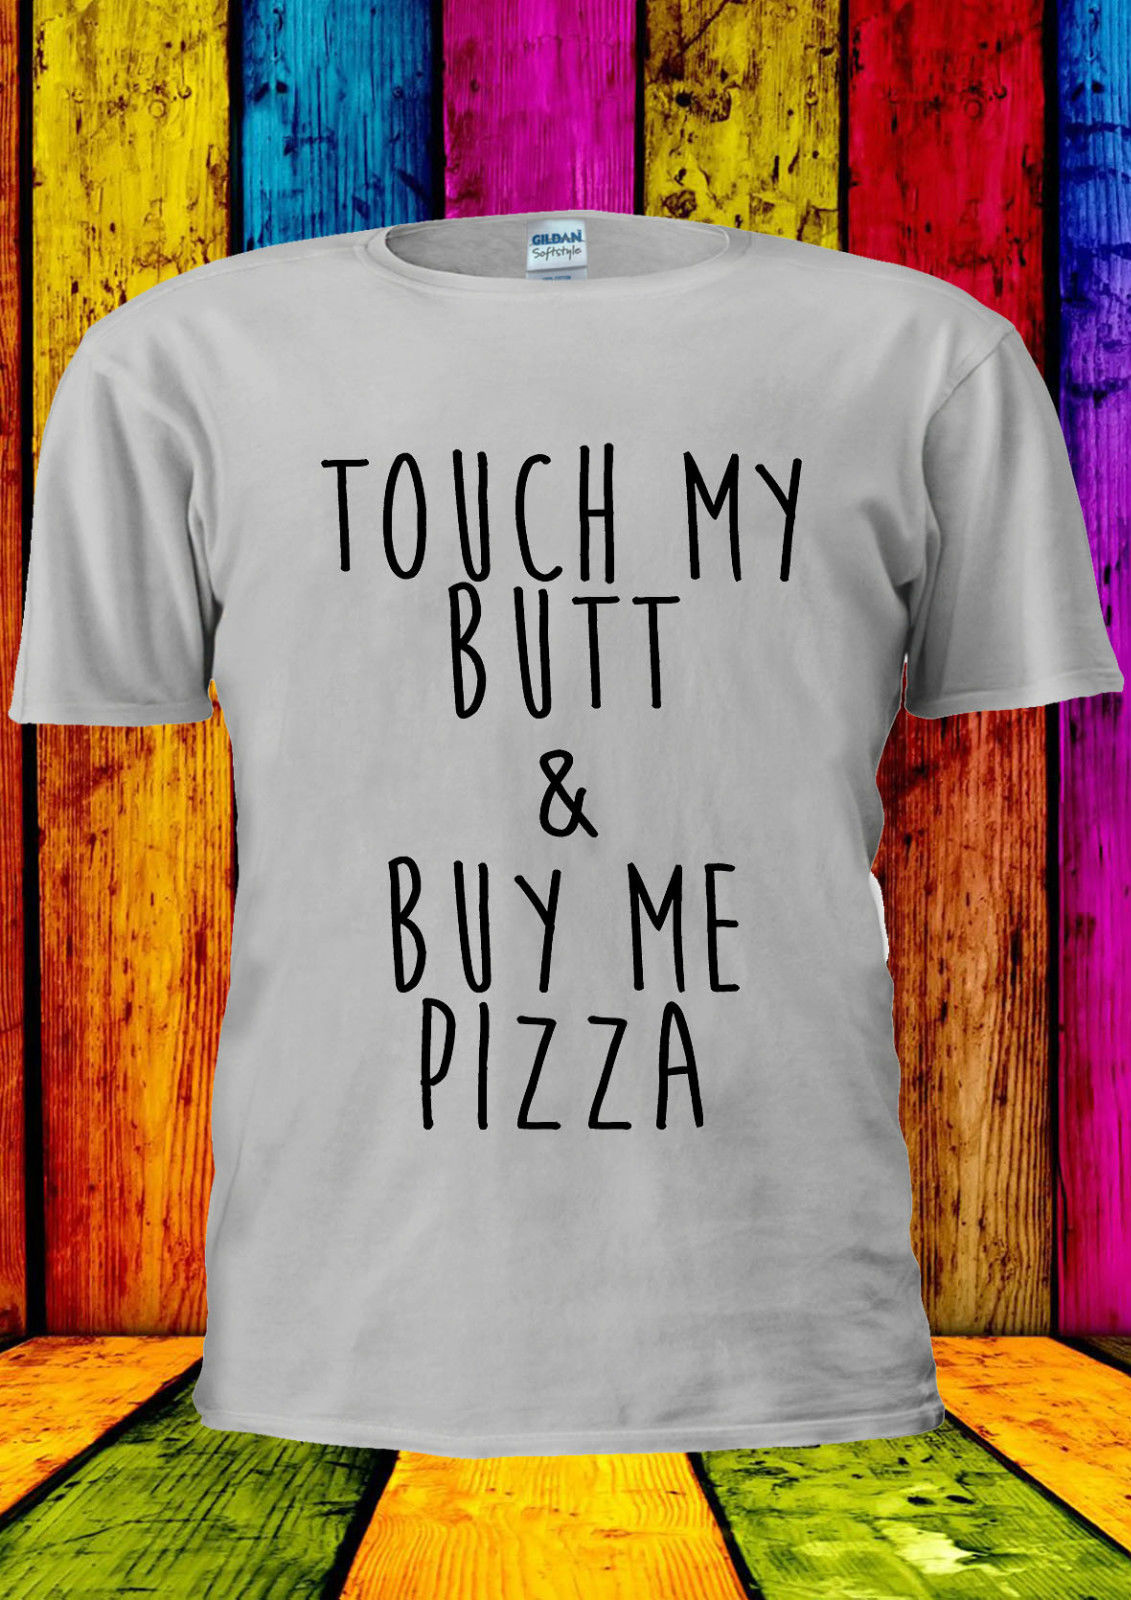 Touch My Butt amp Buy Me Pizza And T shirt Vest Top Men Women Unisex 2324 New Tee New Unisex Funny Tops freeshipping in T Shirts from Men 39 s Clothing